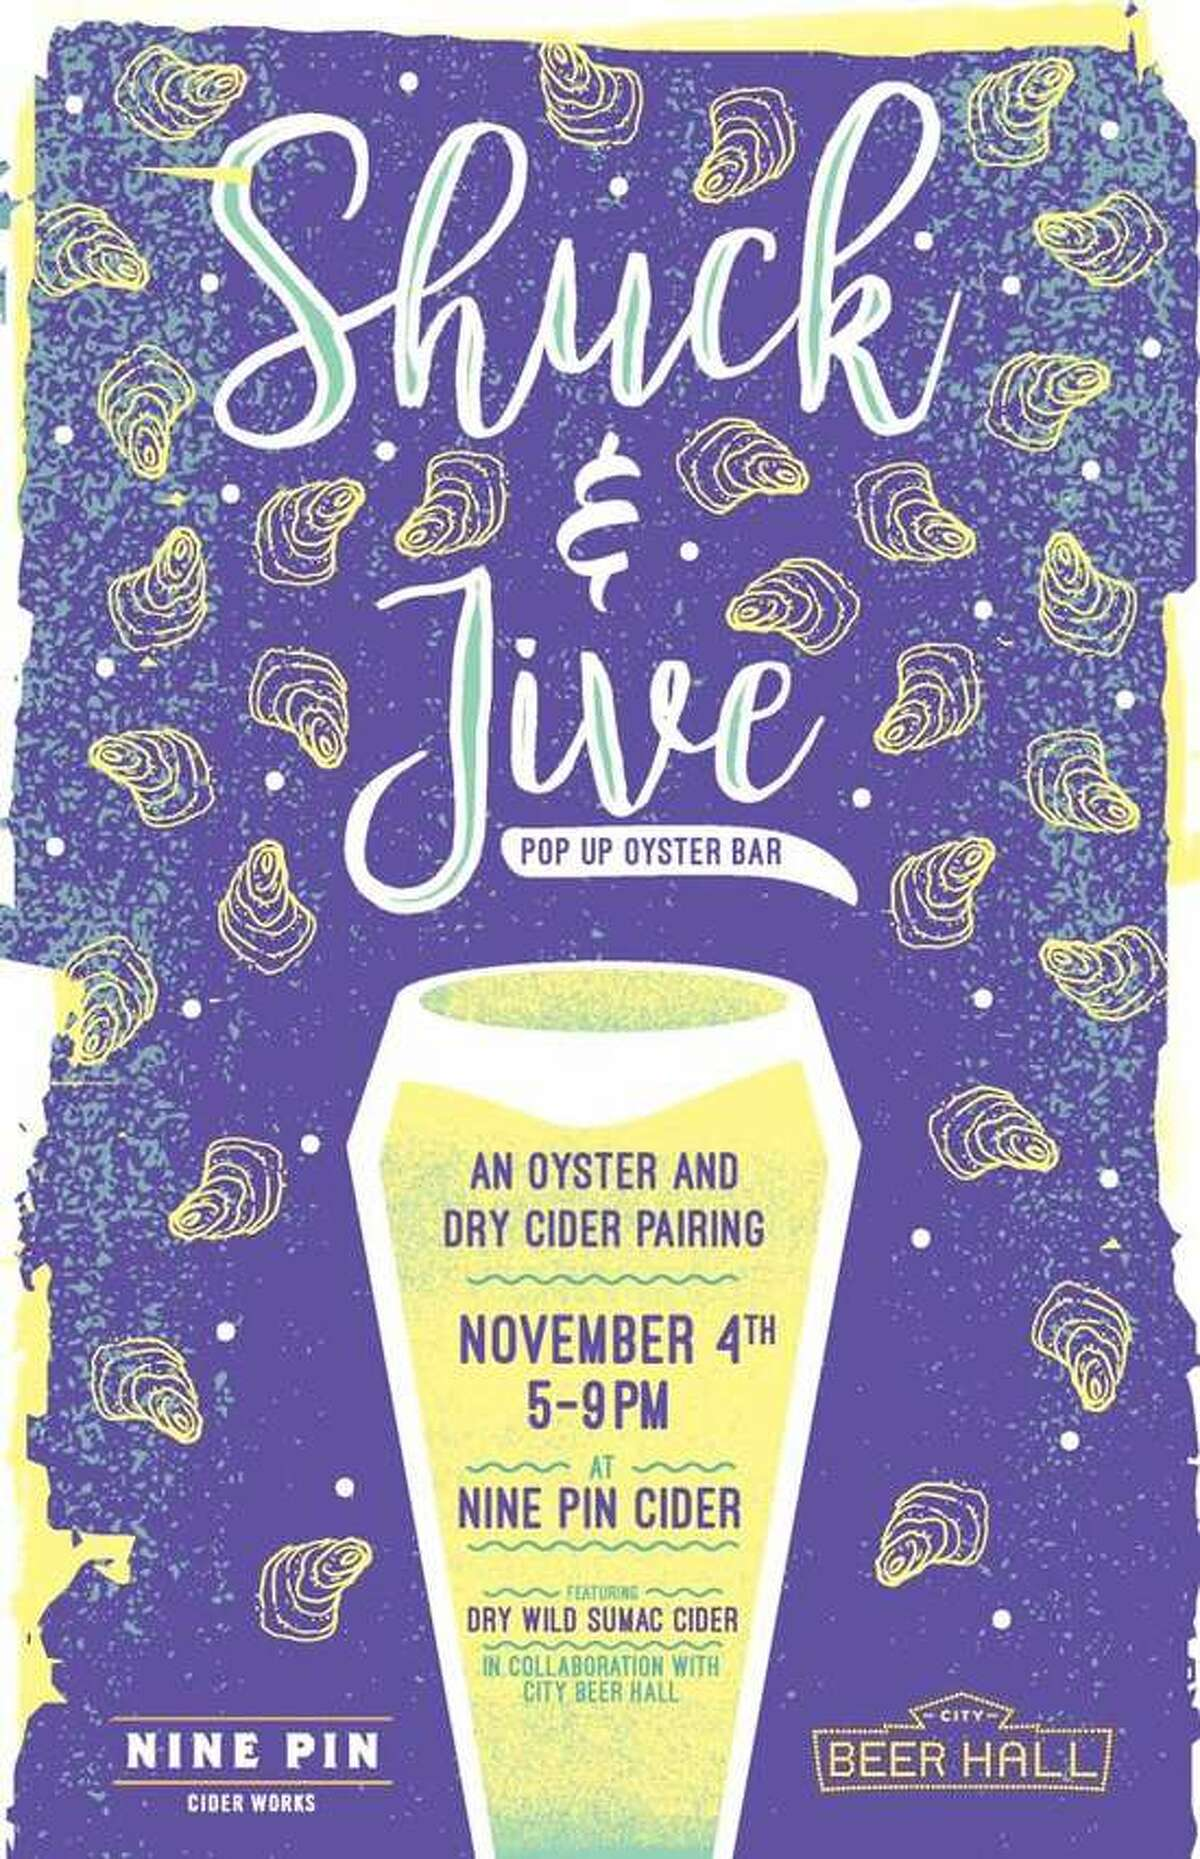 Shuck and Jive. Chefs Dimitrios and Ian will be shucking fresh oysters and preparing delectable accompaniments in the Nine Pin tasting room. First pours of the Dry Wild Sumac Cider will be served. When: Friday, Nov 4, 5 - 9 PM.Where: Nine Pin Cider, 929 Broadway, Albany. For more information, visit the Facebook event page.